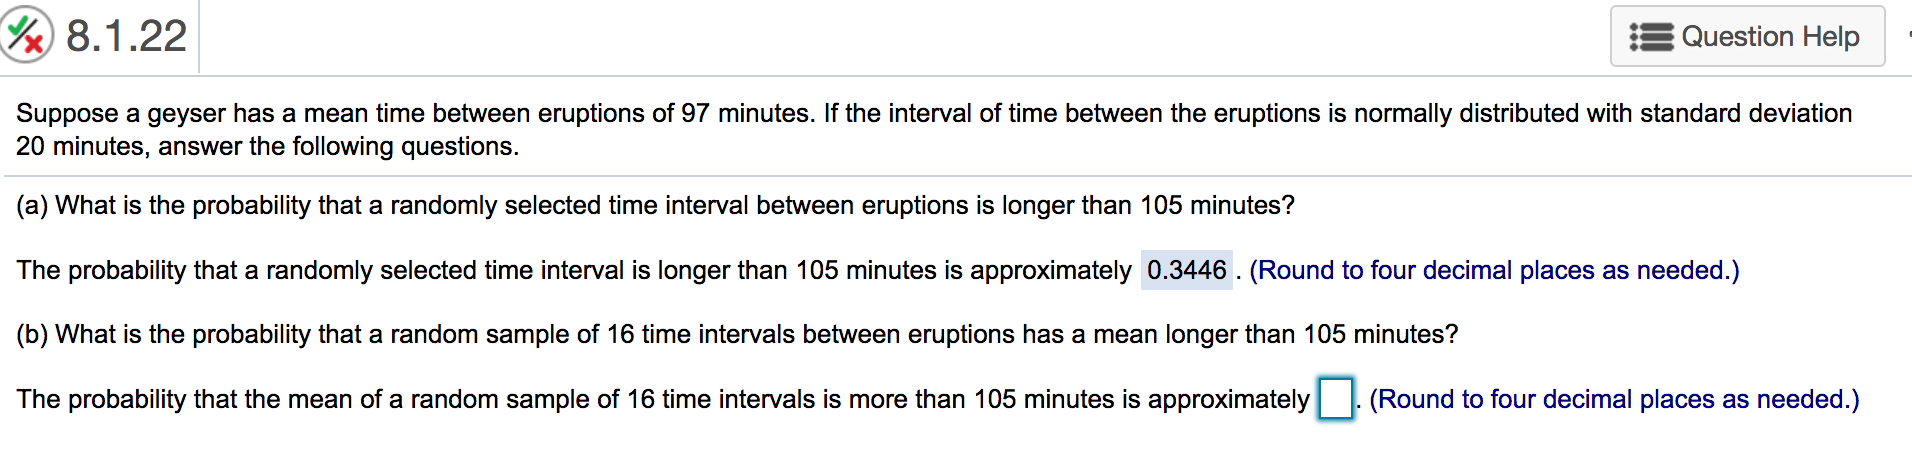 8.1.22 Question Help Suppose a geyser has a mean time between eruptions of 97 minutes. If the interval of time between the eruptions is normally distributed with standard deviation 20 minutes, answer the following questions. (a) What is the probability that a randomly selected time interval between eruptions is longer than 105 minutes? The probability that a randomly selected time interval is longer than 105 minutes is approximately 0.3446. (Round to four decimal places as needed.) (b) What is the probability that a random sample of 16 time intervals between eruptions has a mean longer than 105 minutes? (Round to four decimal places as needed.) The probability that the mean of a random sample of 16 time intervals is more than 105 minutes is approximately